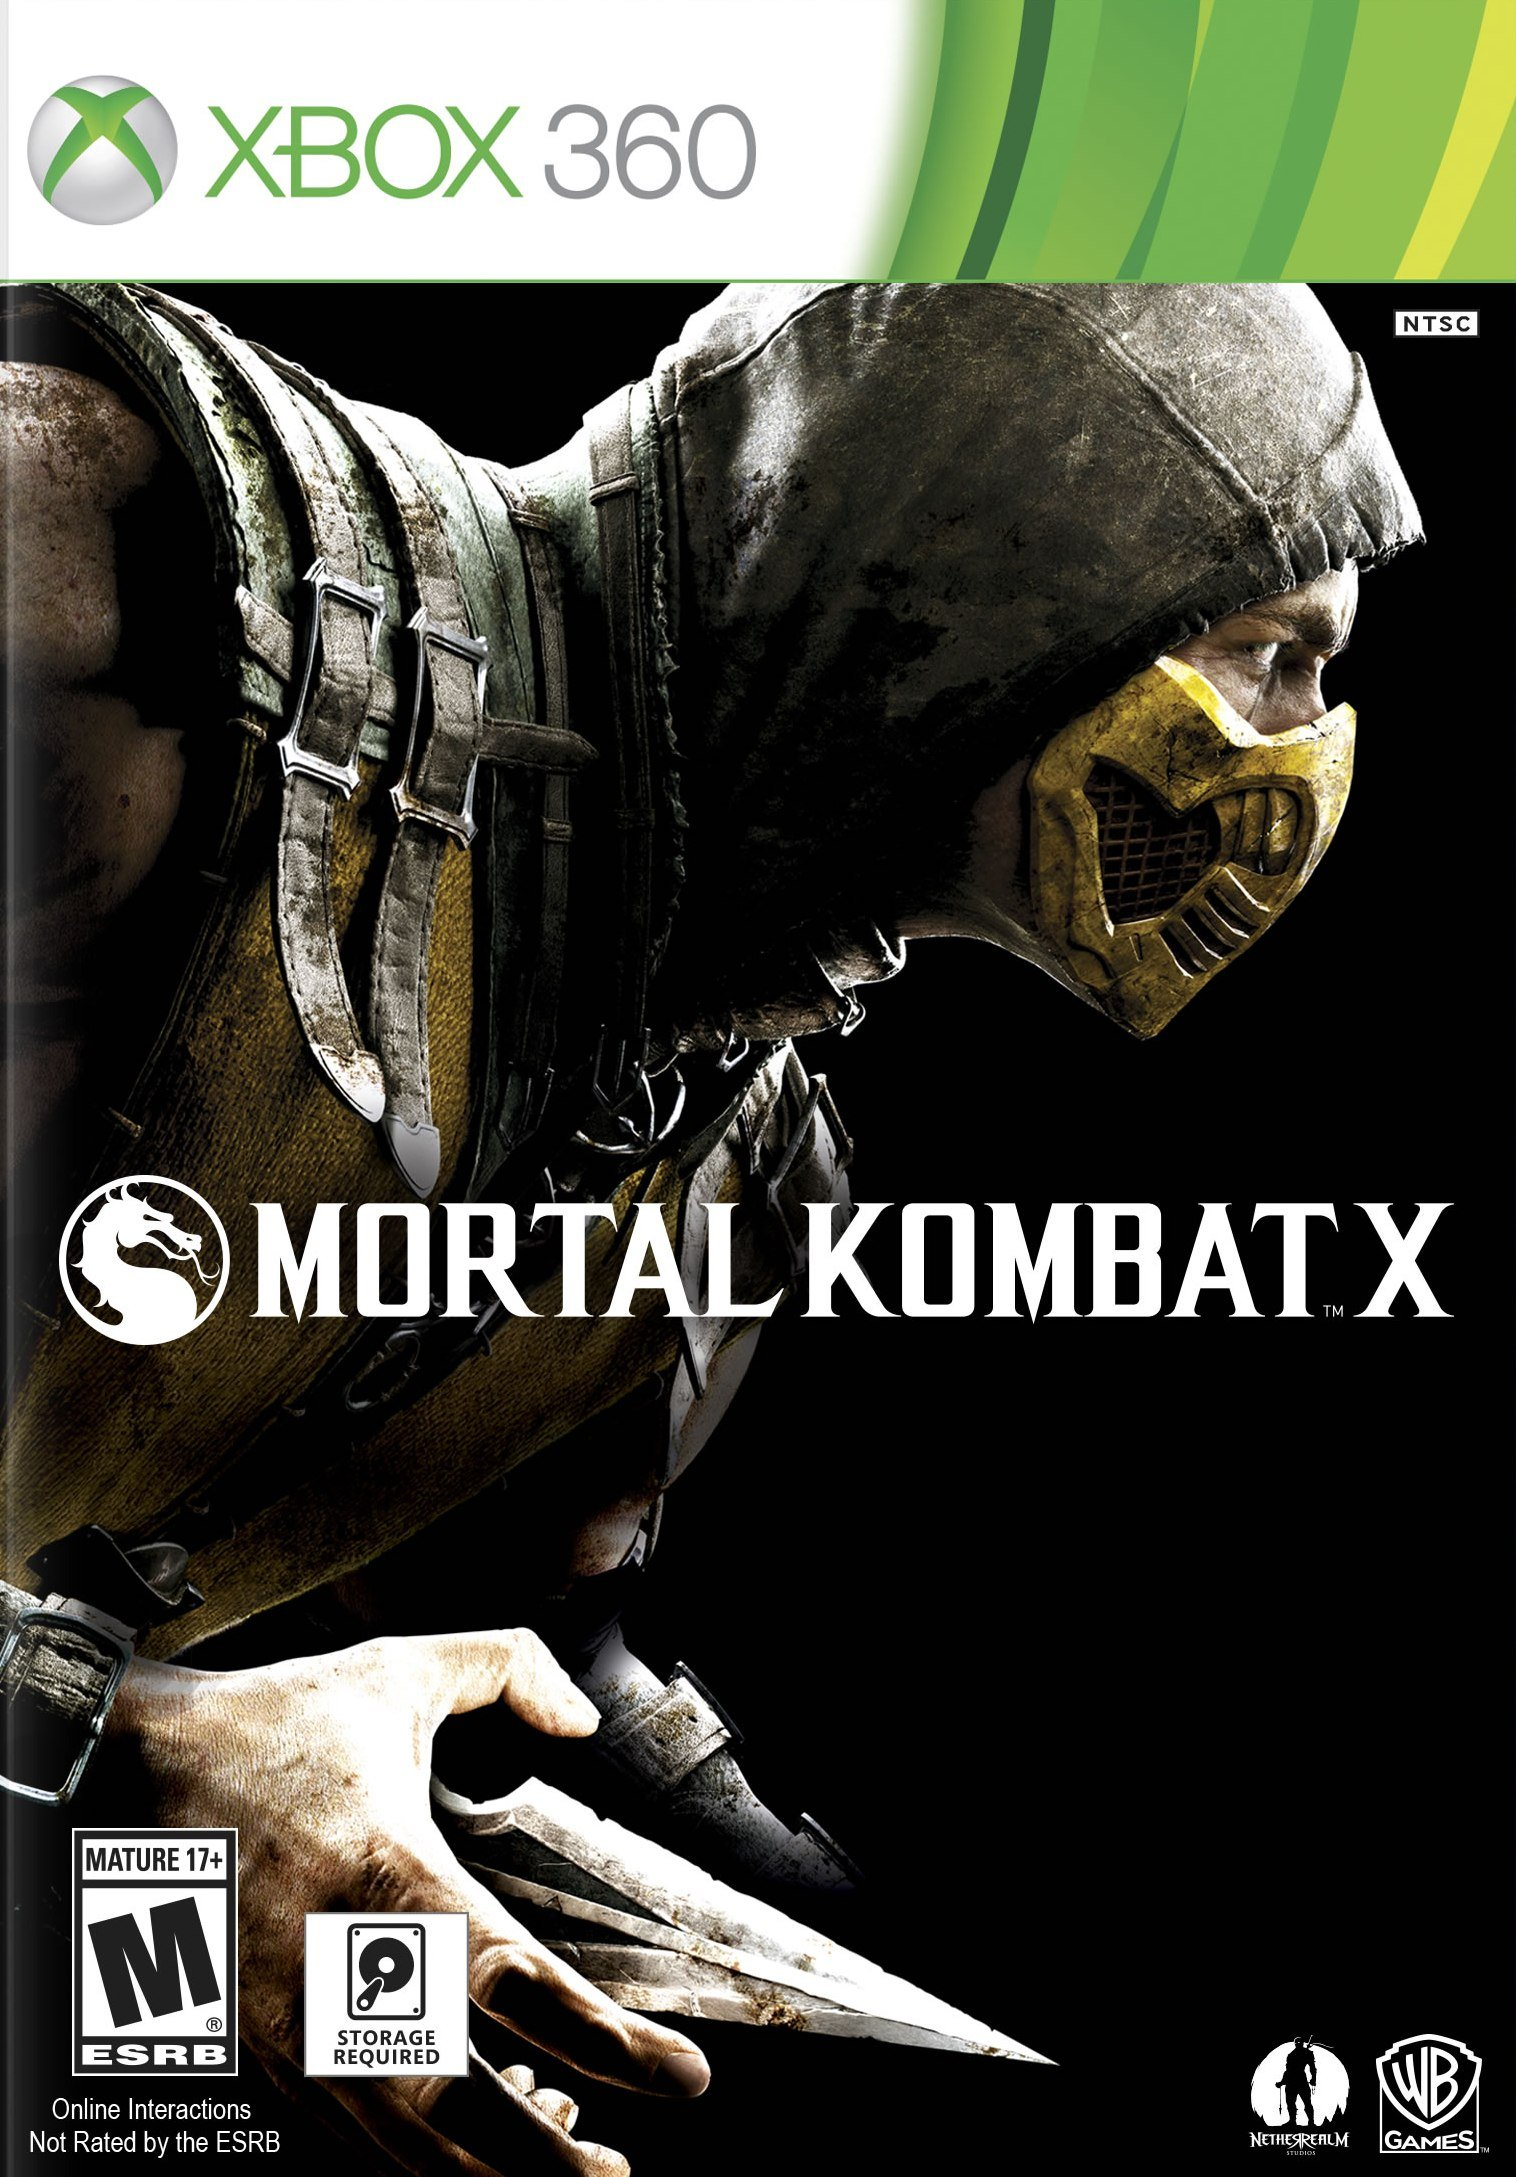 Mortal Kombat X Release Date (Xbox 360, PS3, Xbox One, PS4)